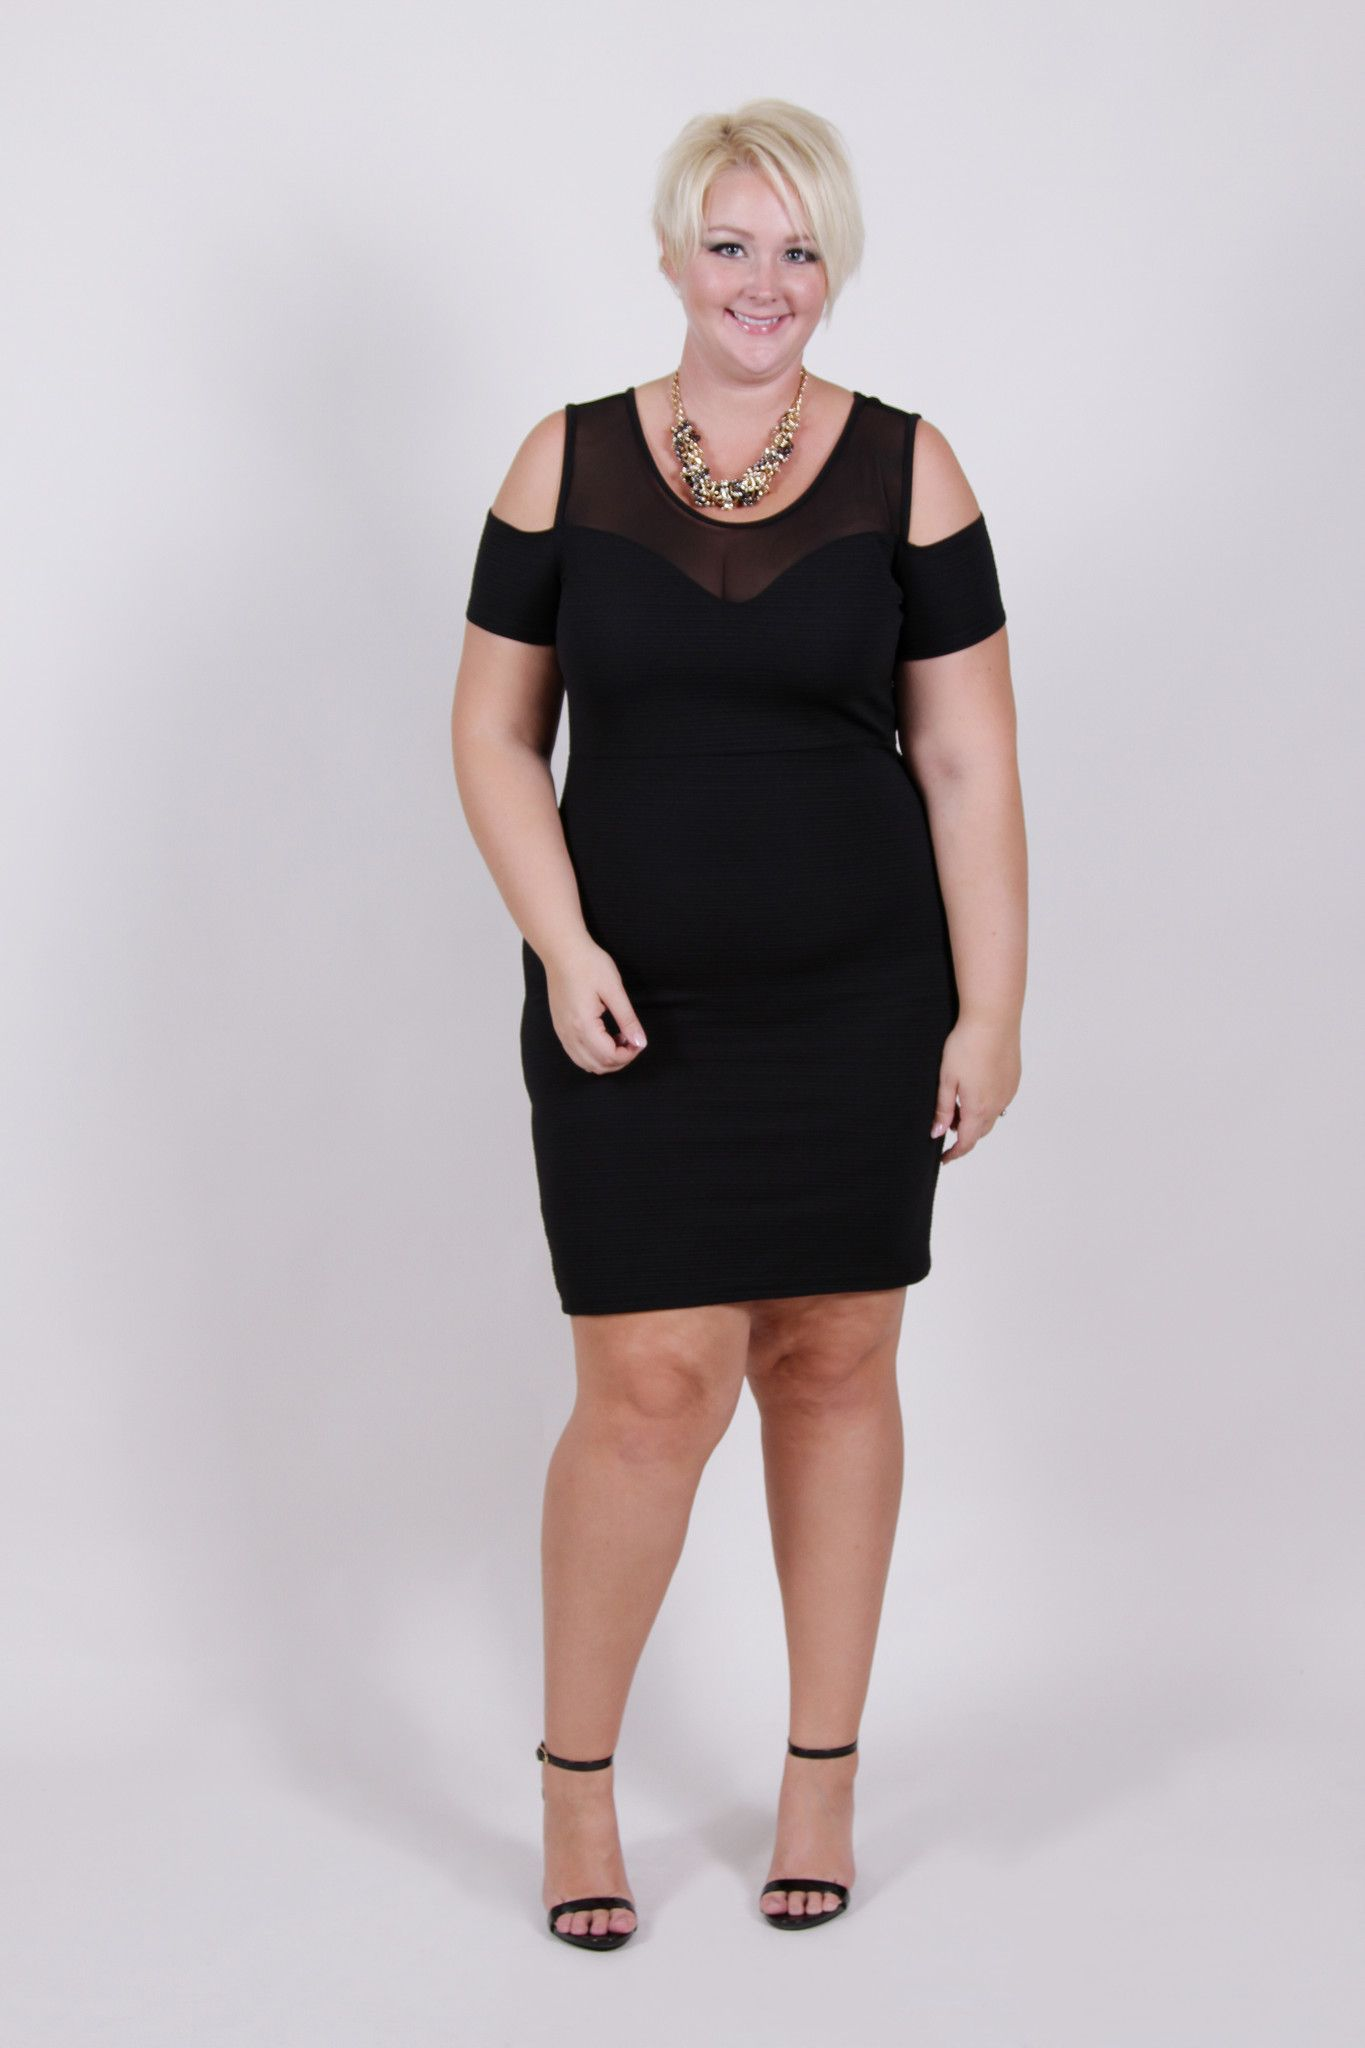 Lbd Stunning Silhouette Plus Size Dress Sizes 14 18 Plus Size